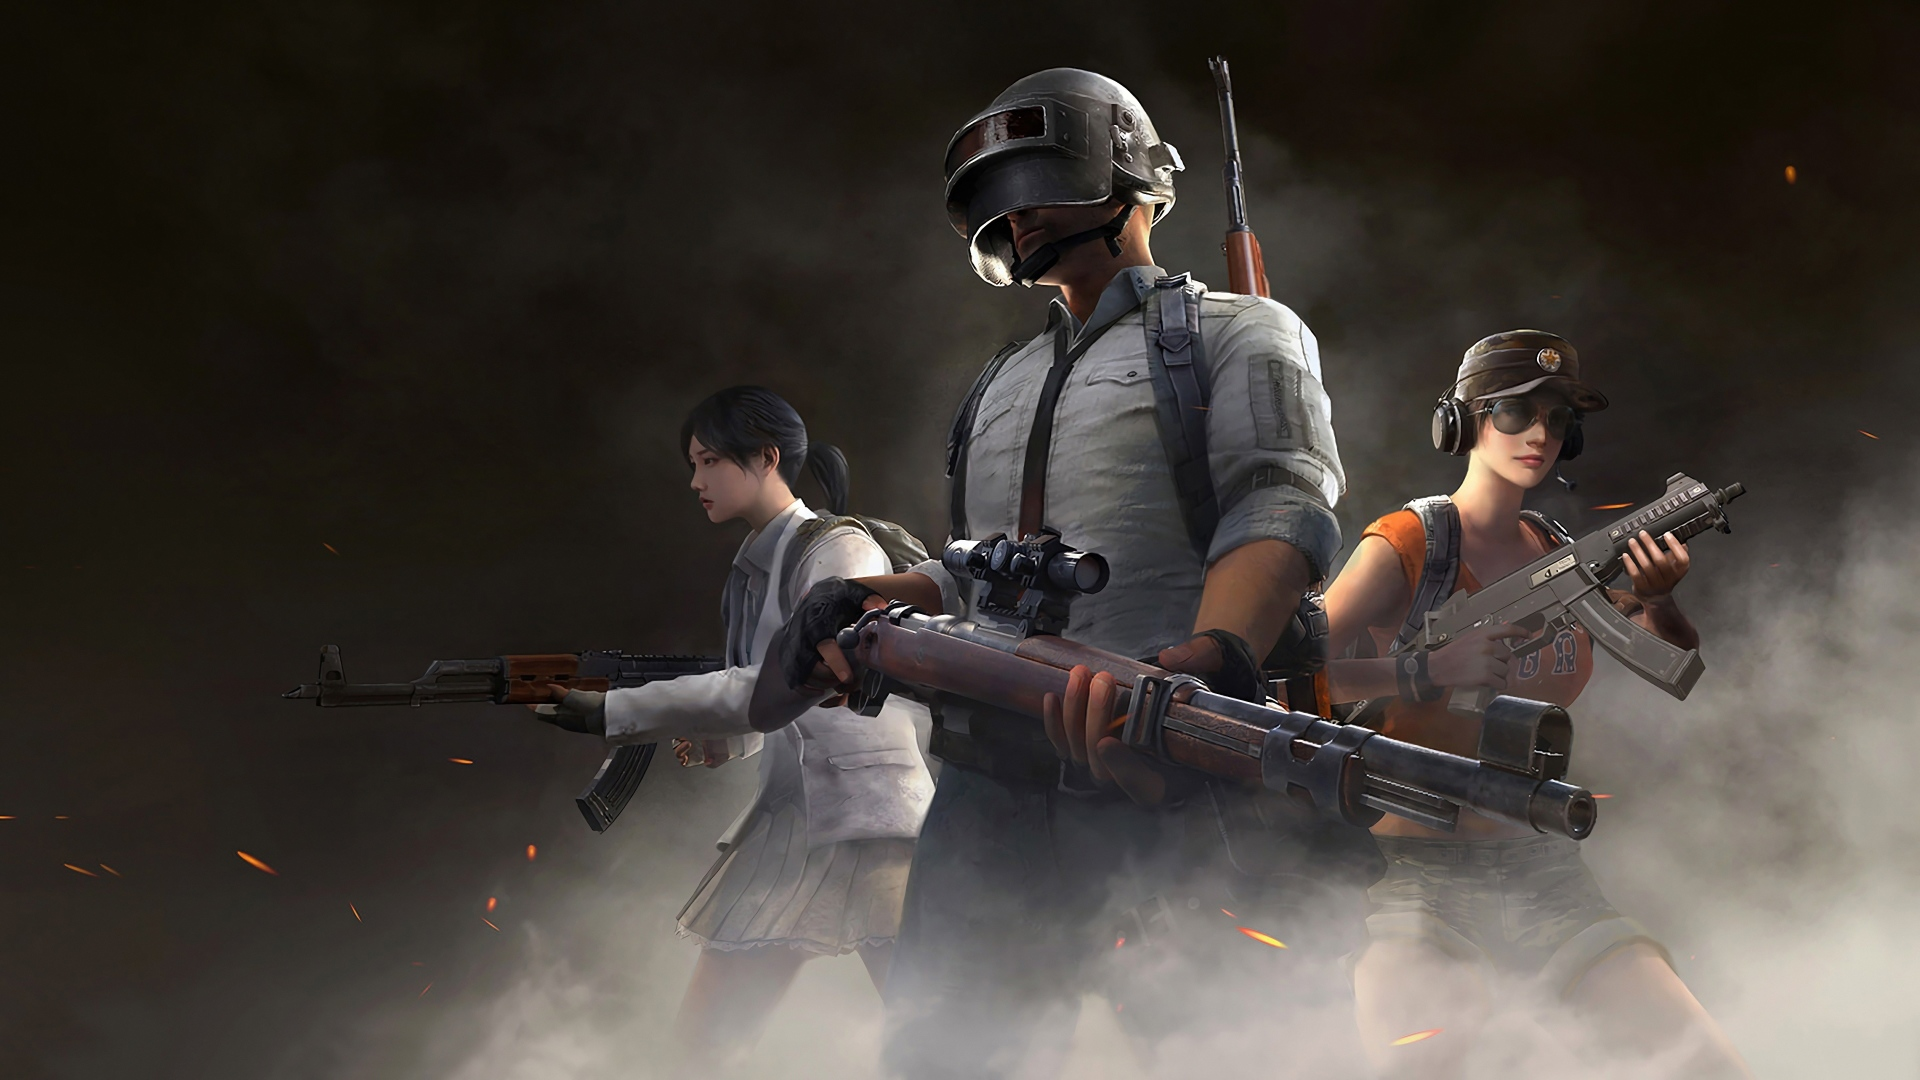 Download Pubg Mobile Wallpapers 720p 1080p 4k: Download Pubg 1920x1080 Resolution, HD 4K Wallpaper